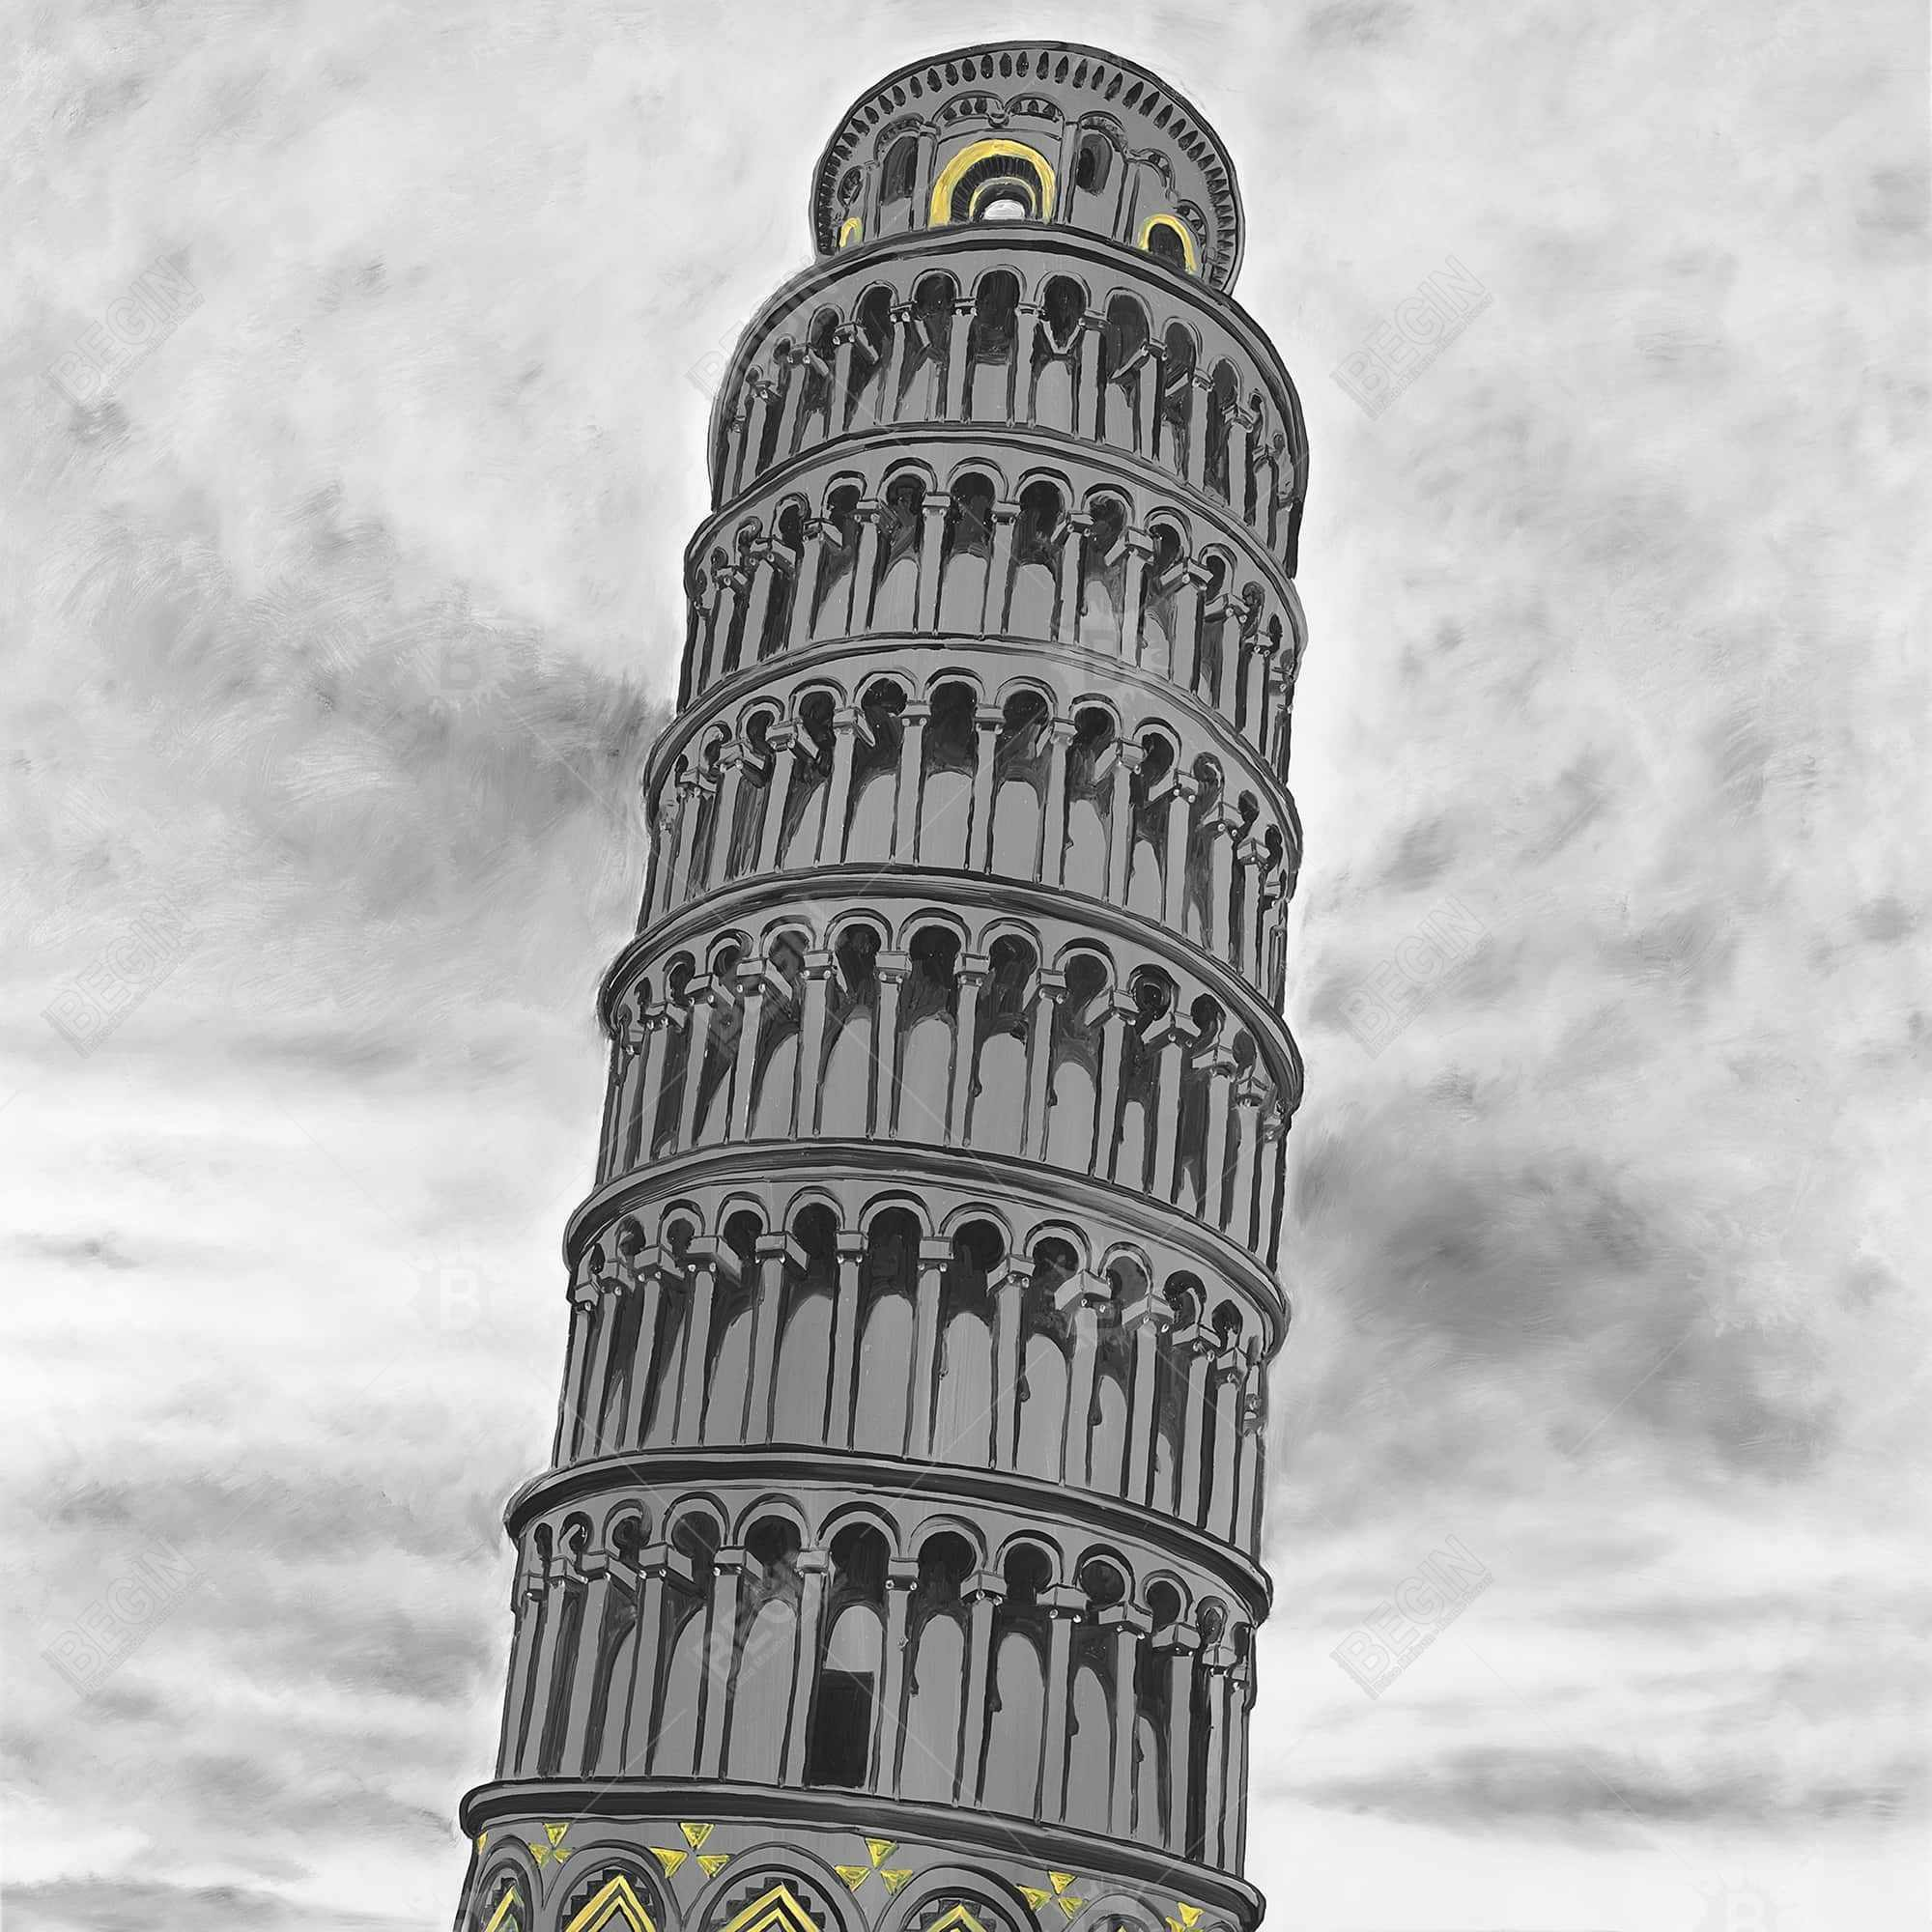 Outline of tower of pisa in italy